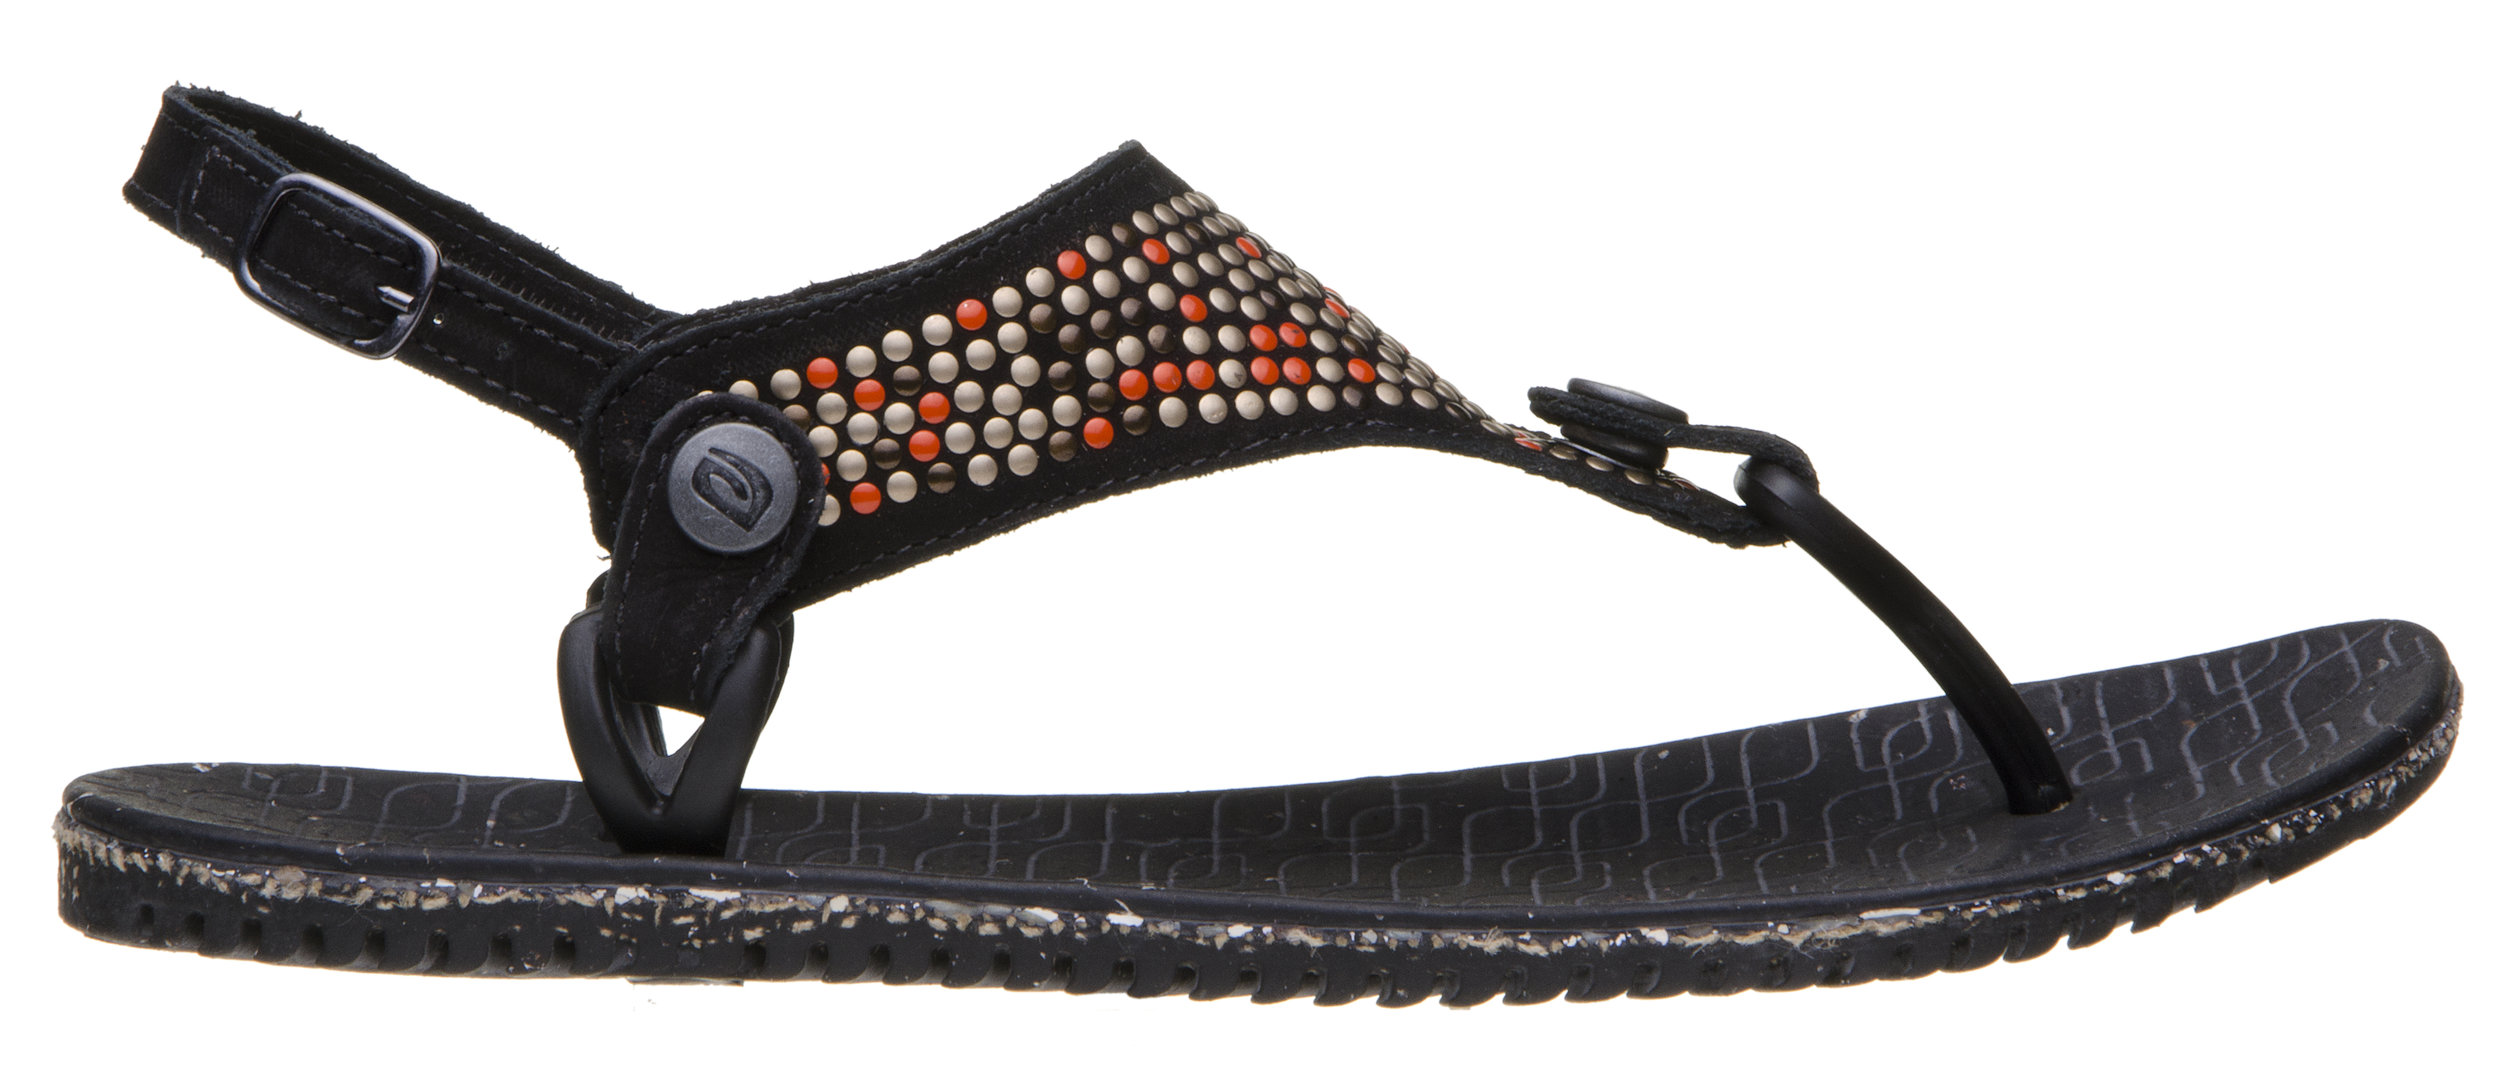 Women - Luxury is in the recycling. Comfort is in the design. A sandal to be worn all summer.